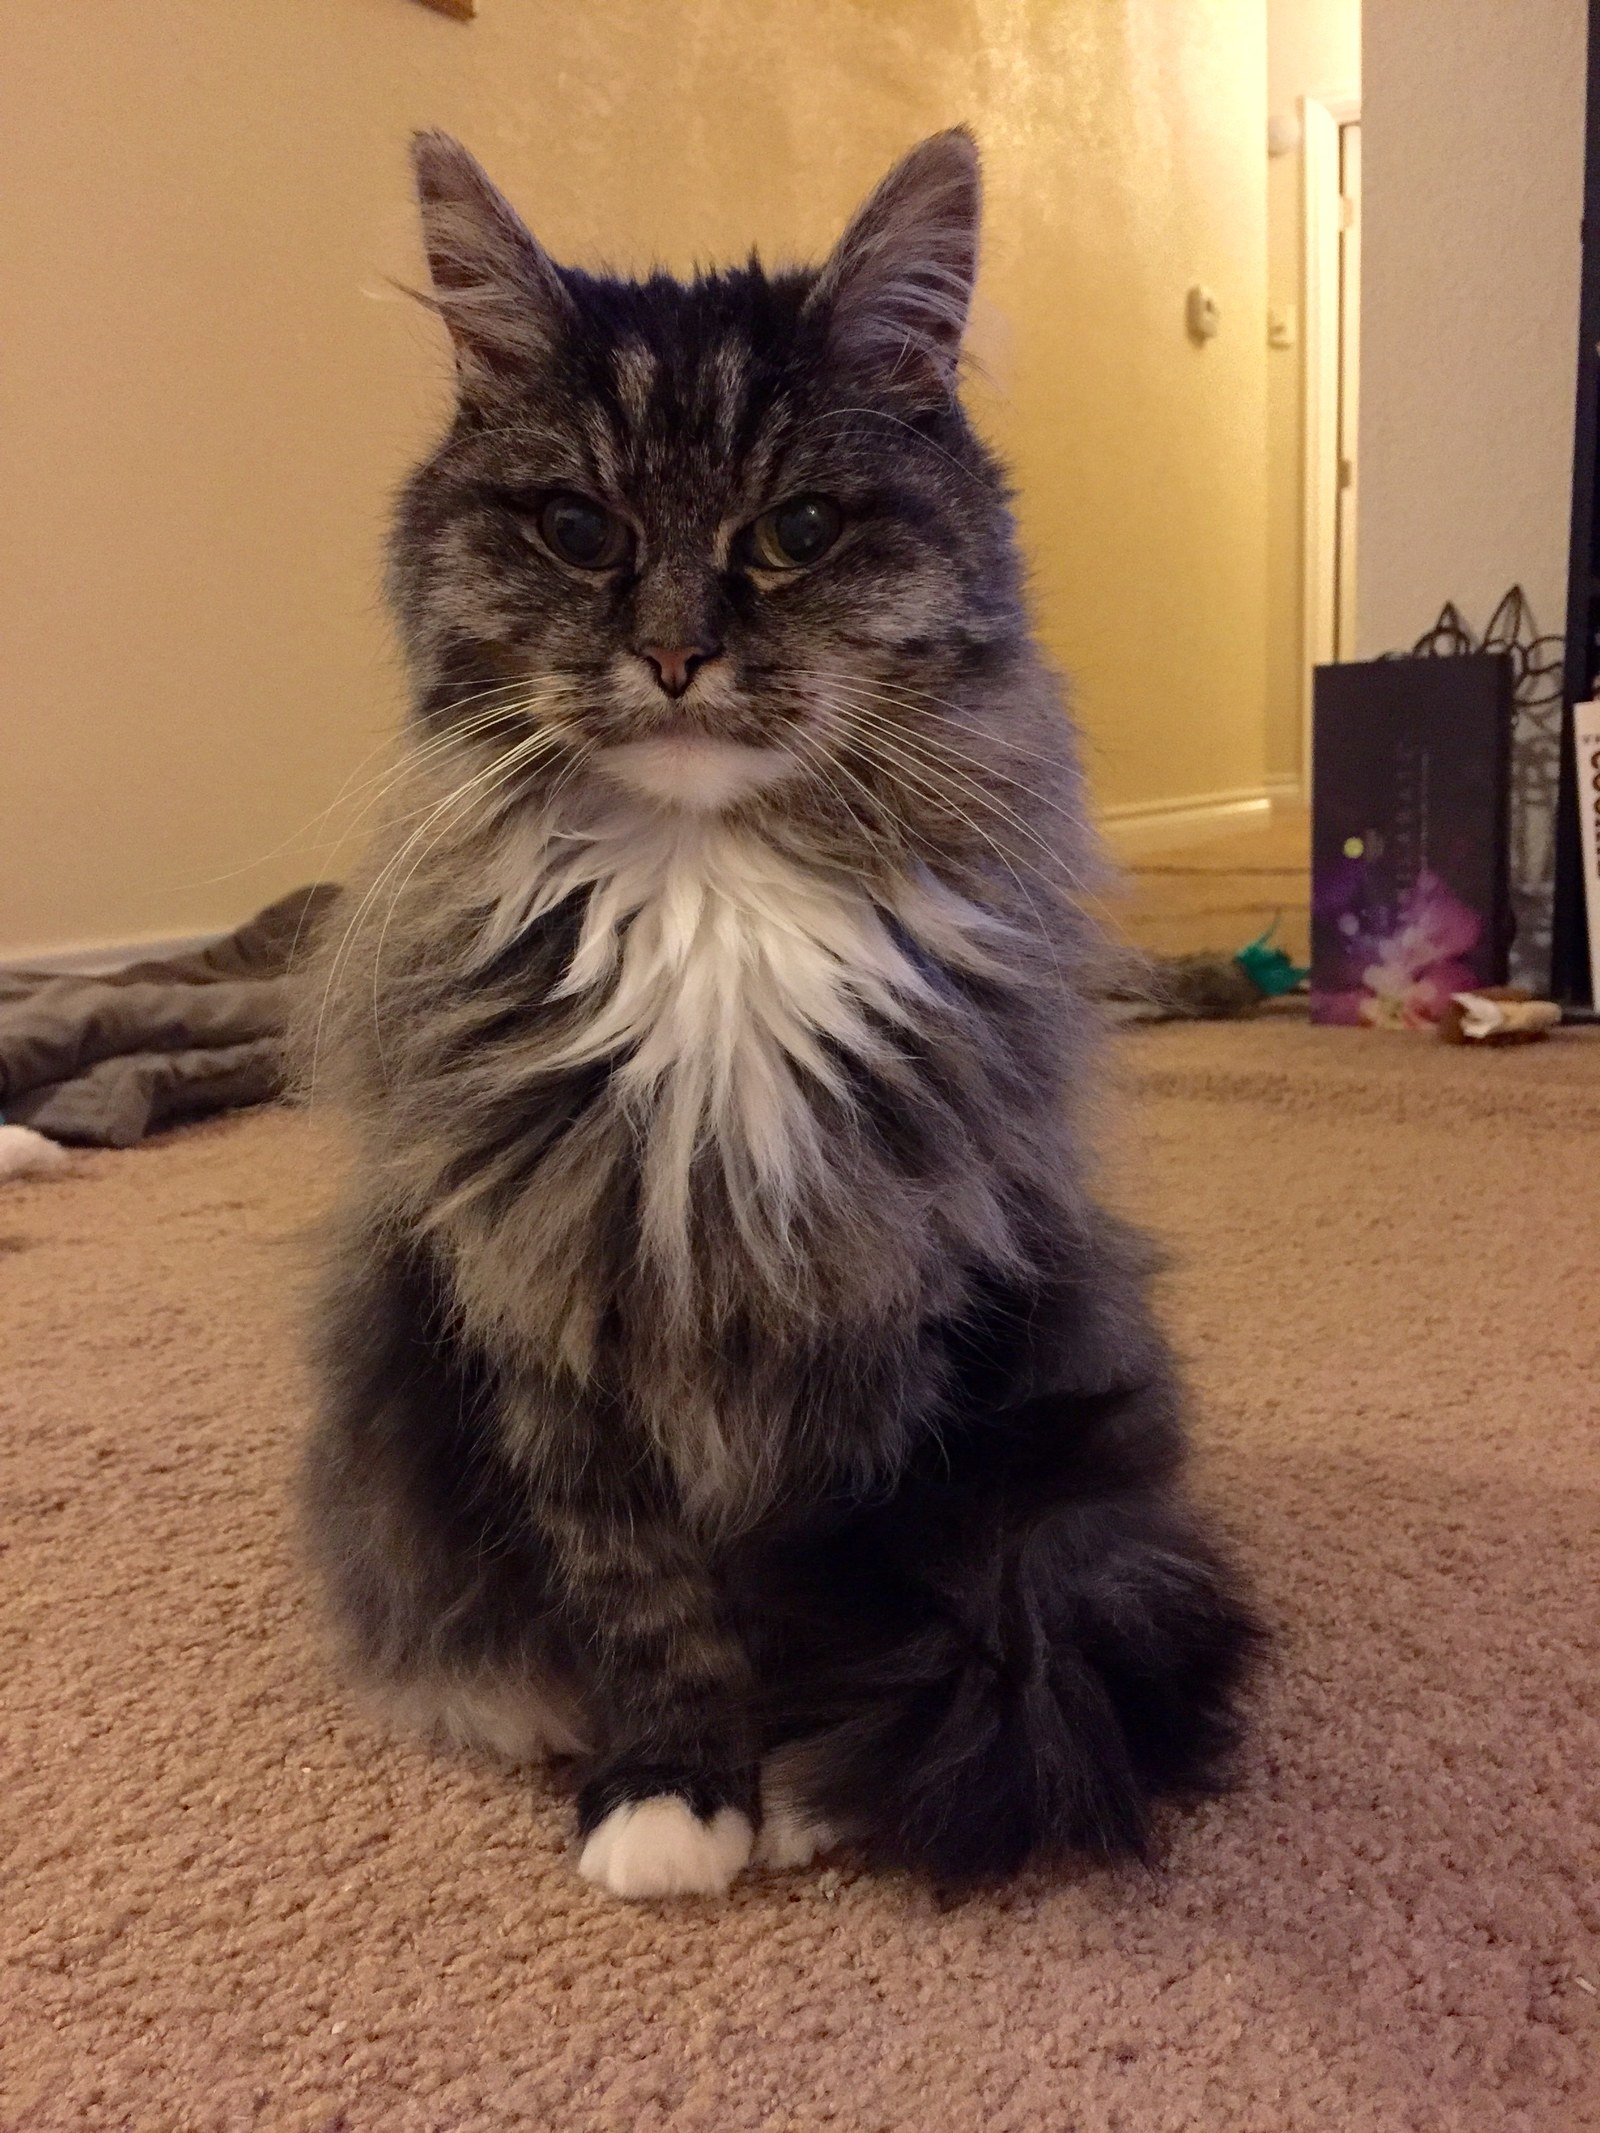 16 Cats Who Hate How Fluffy They Are